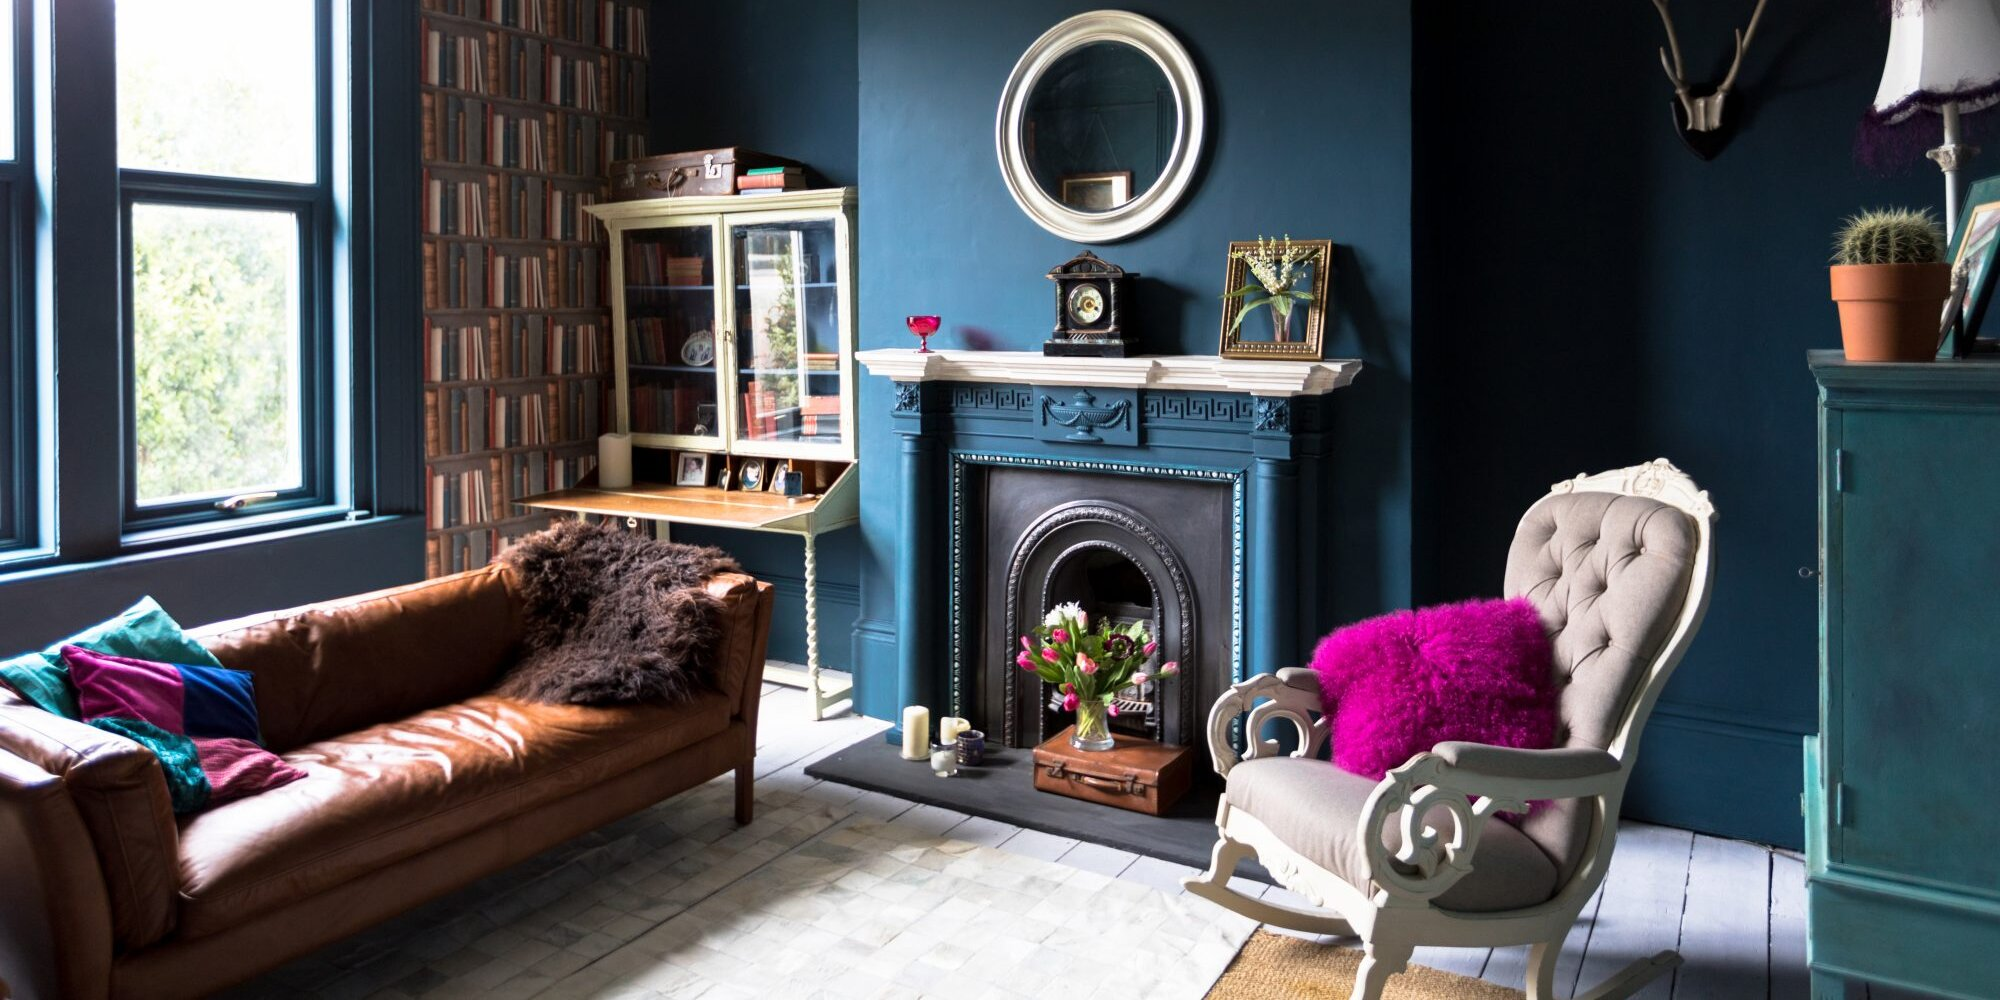 32 Simple Secrets to Finding Your Personal Home Decor Style   Real ...